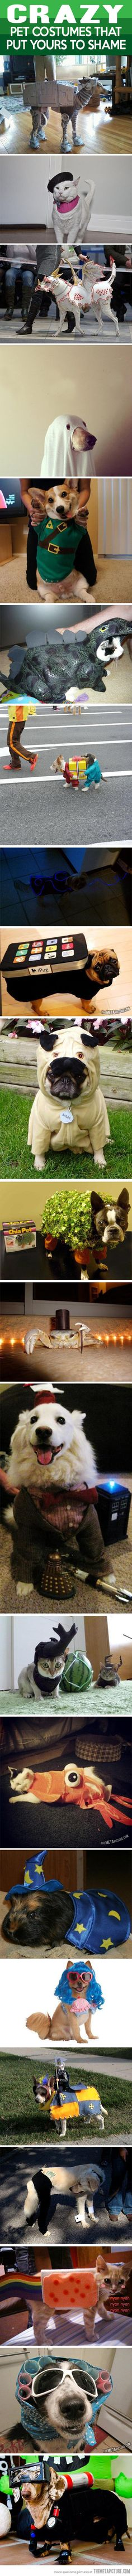 25 crazy pet costumes that put yours to shame…